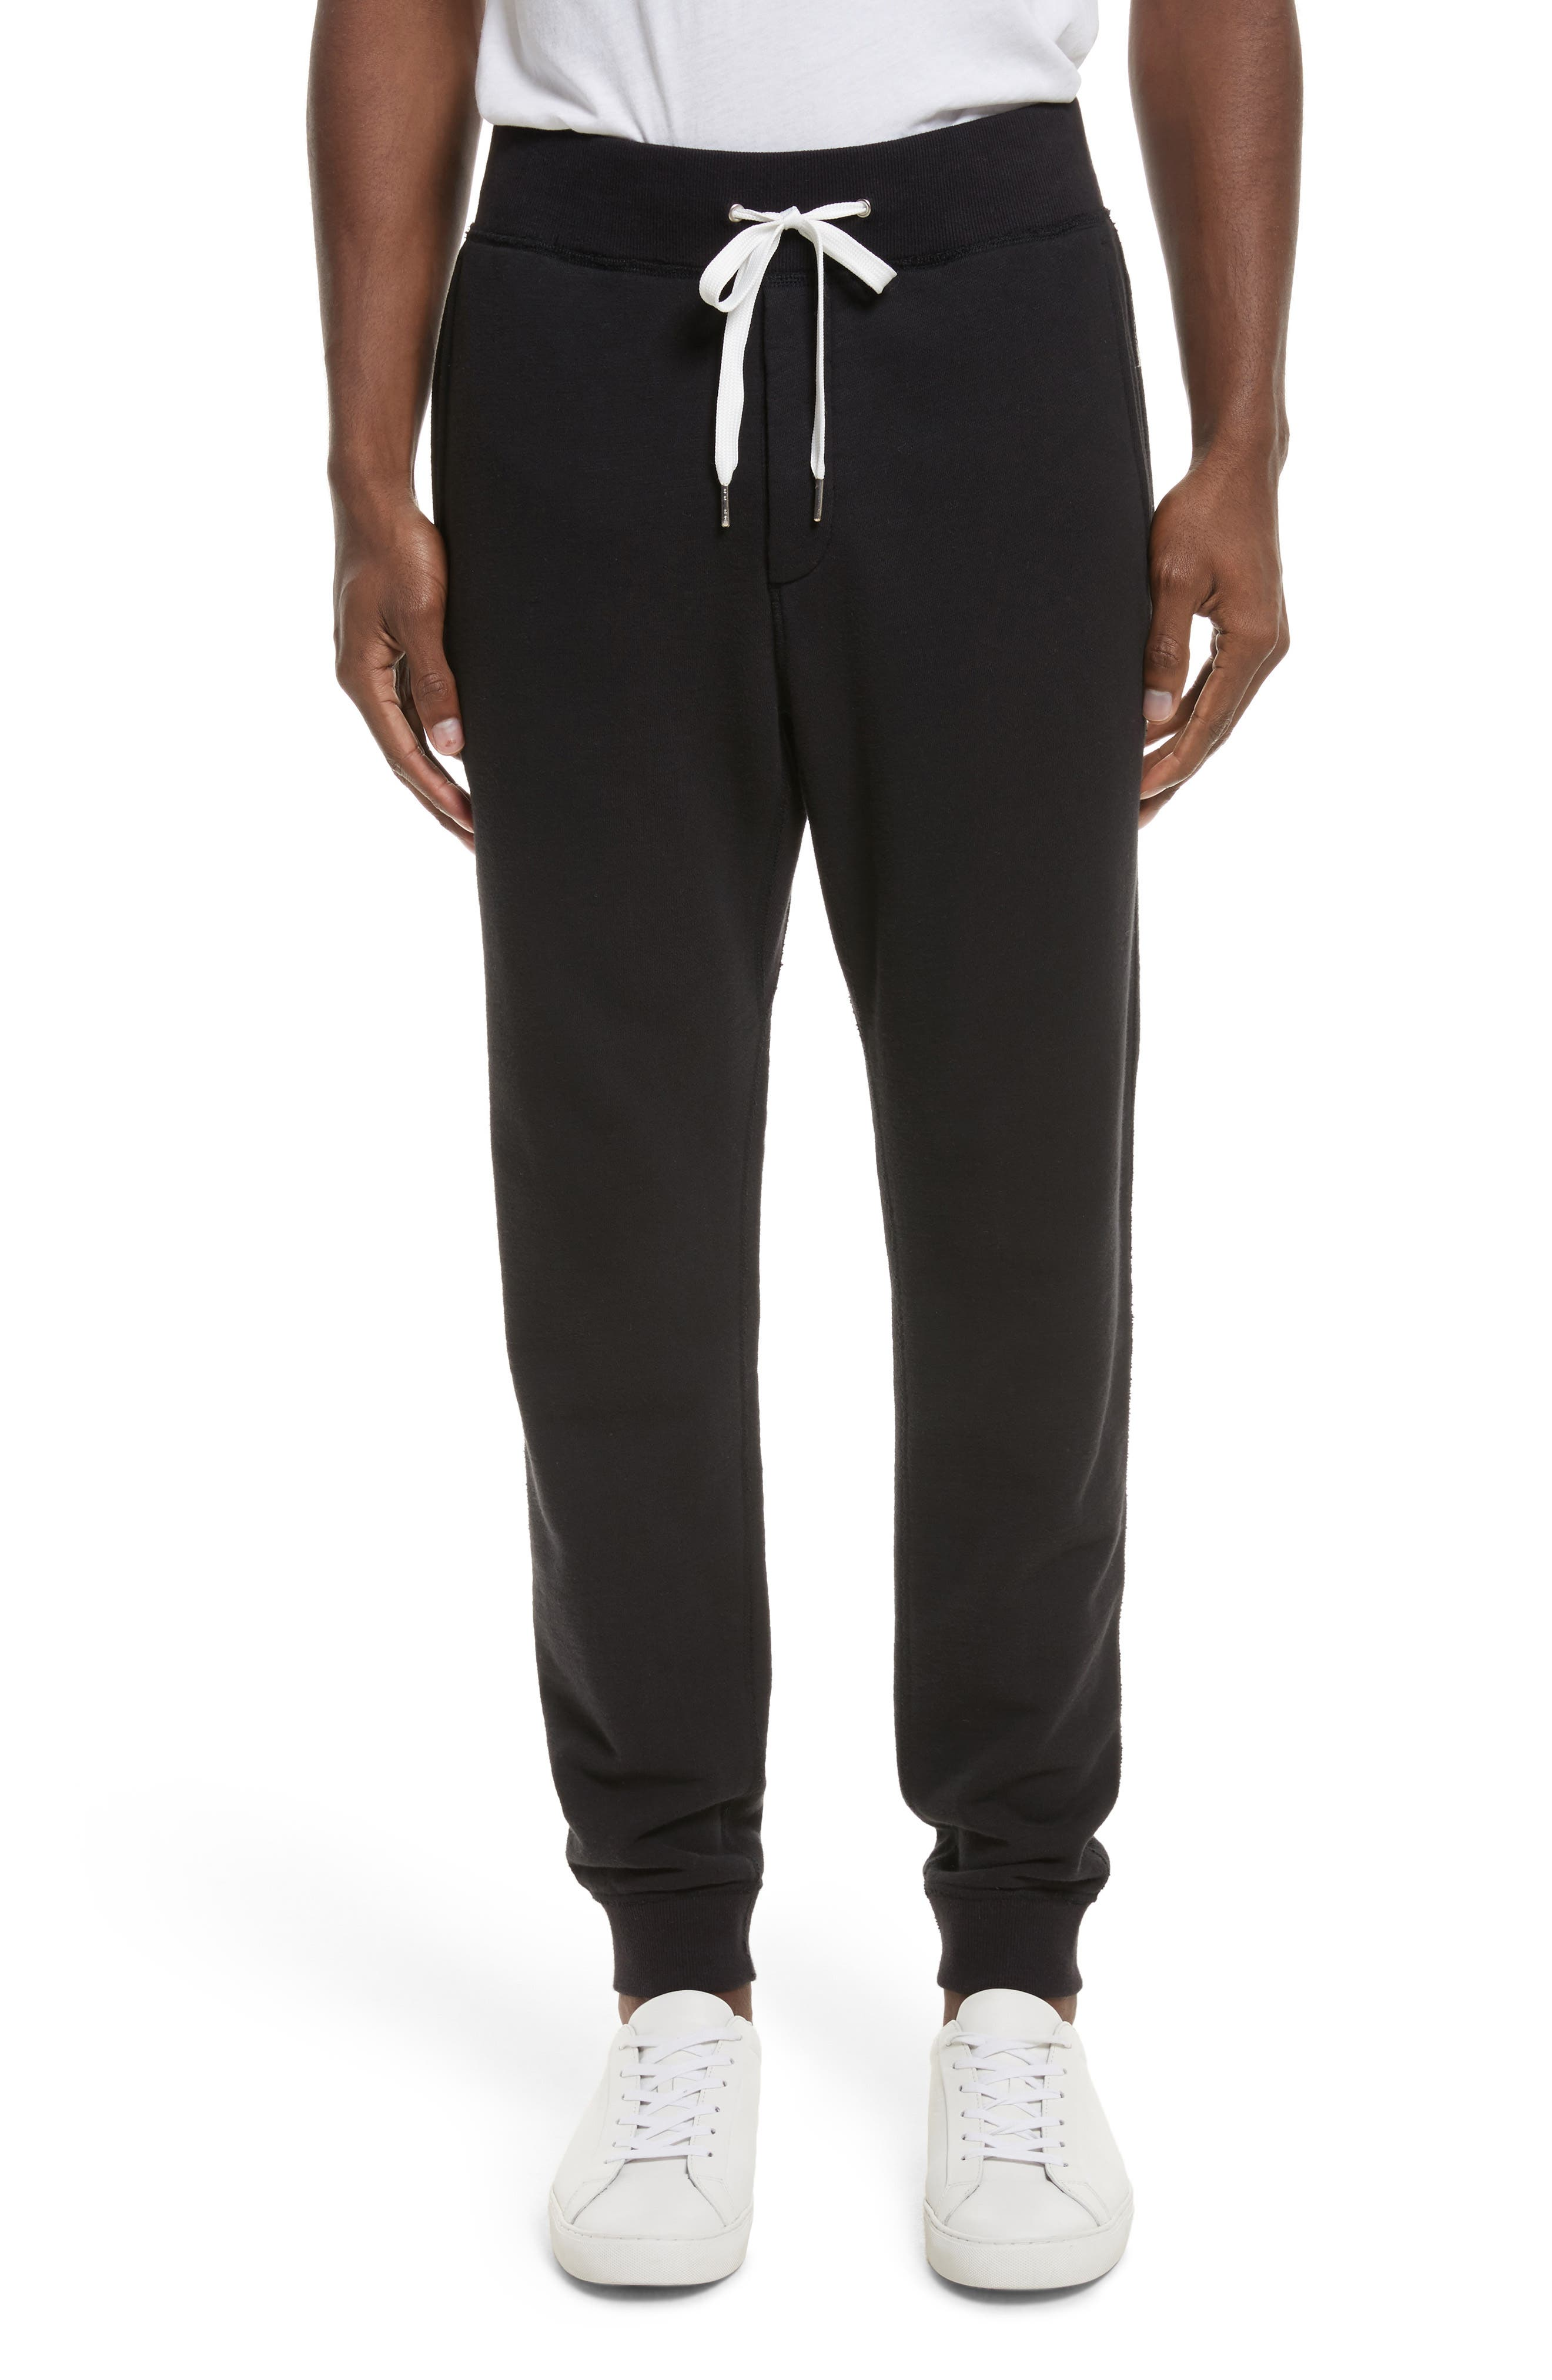 Standard Issue Sweatpants,                             Main thumbnail 1, color,                             Black